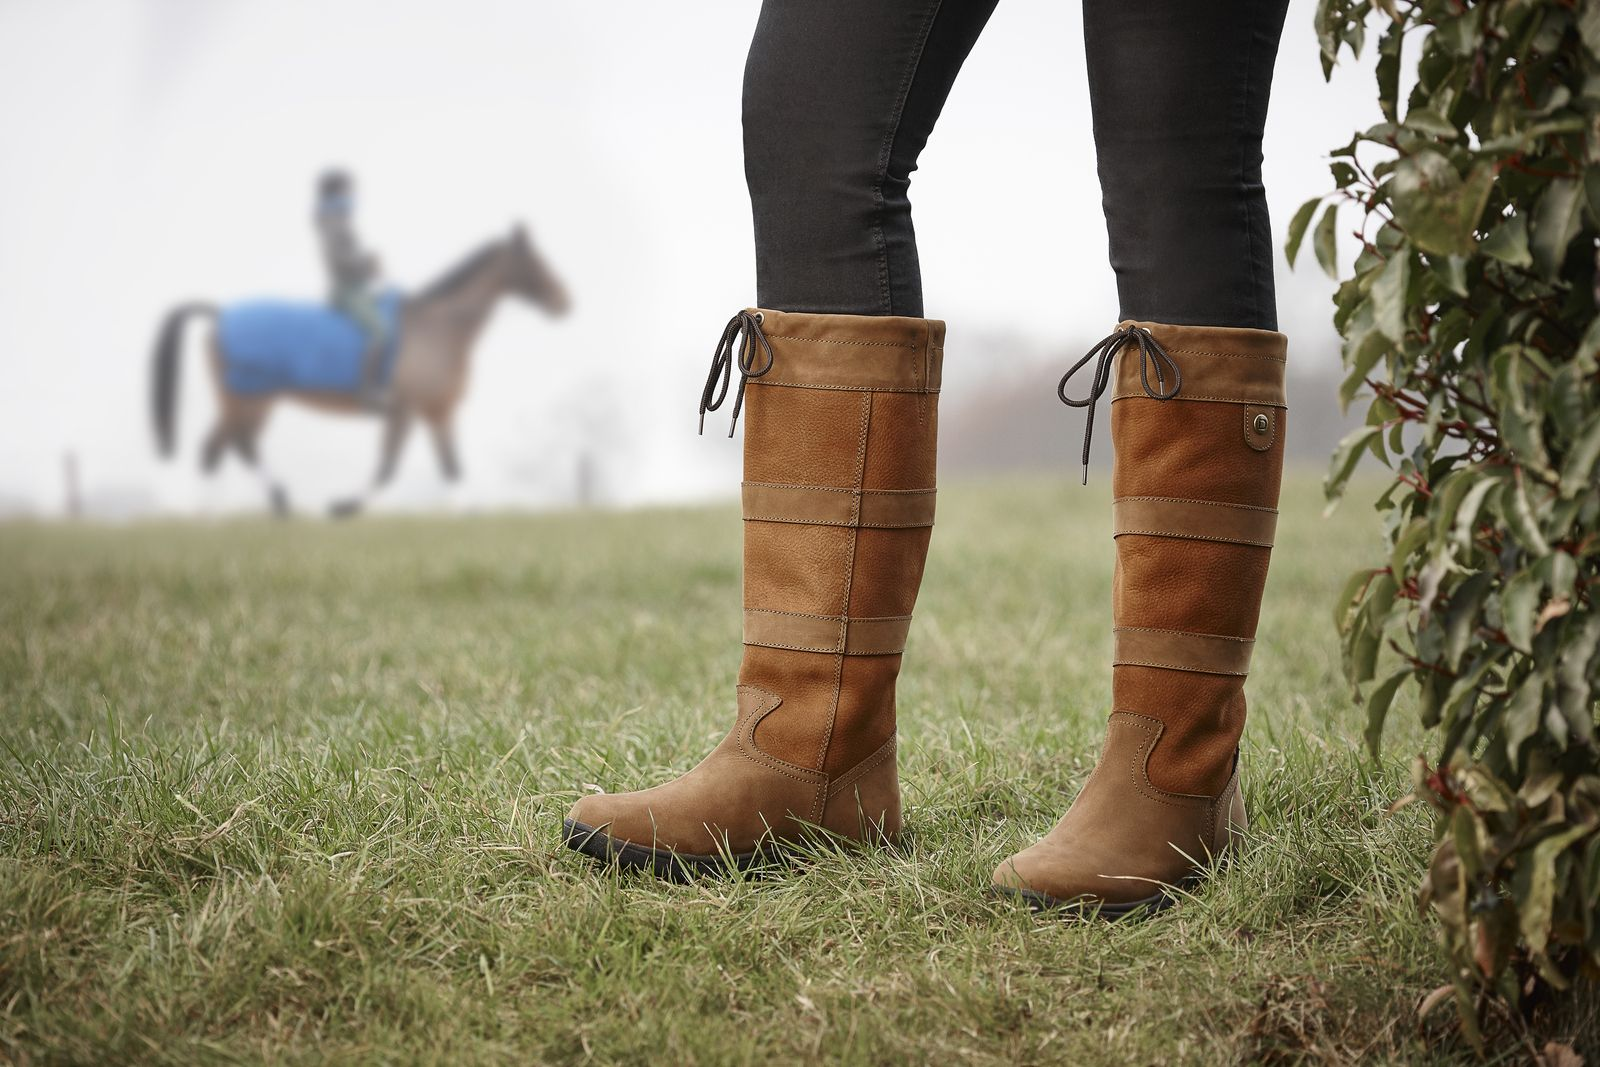 220242cadf1 Dublin Ladies  River Tall Boots Waterproof Leather Rider Comfort ...